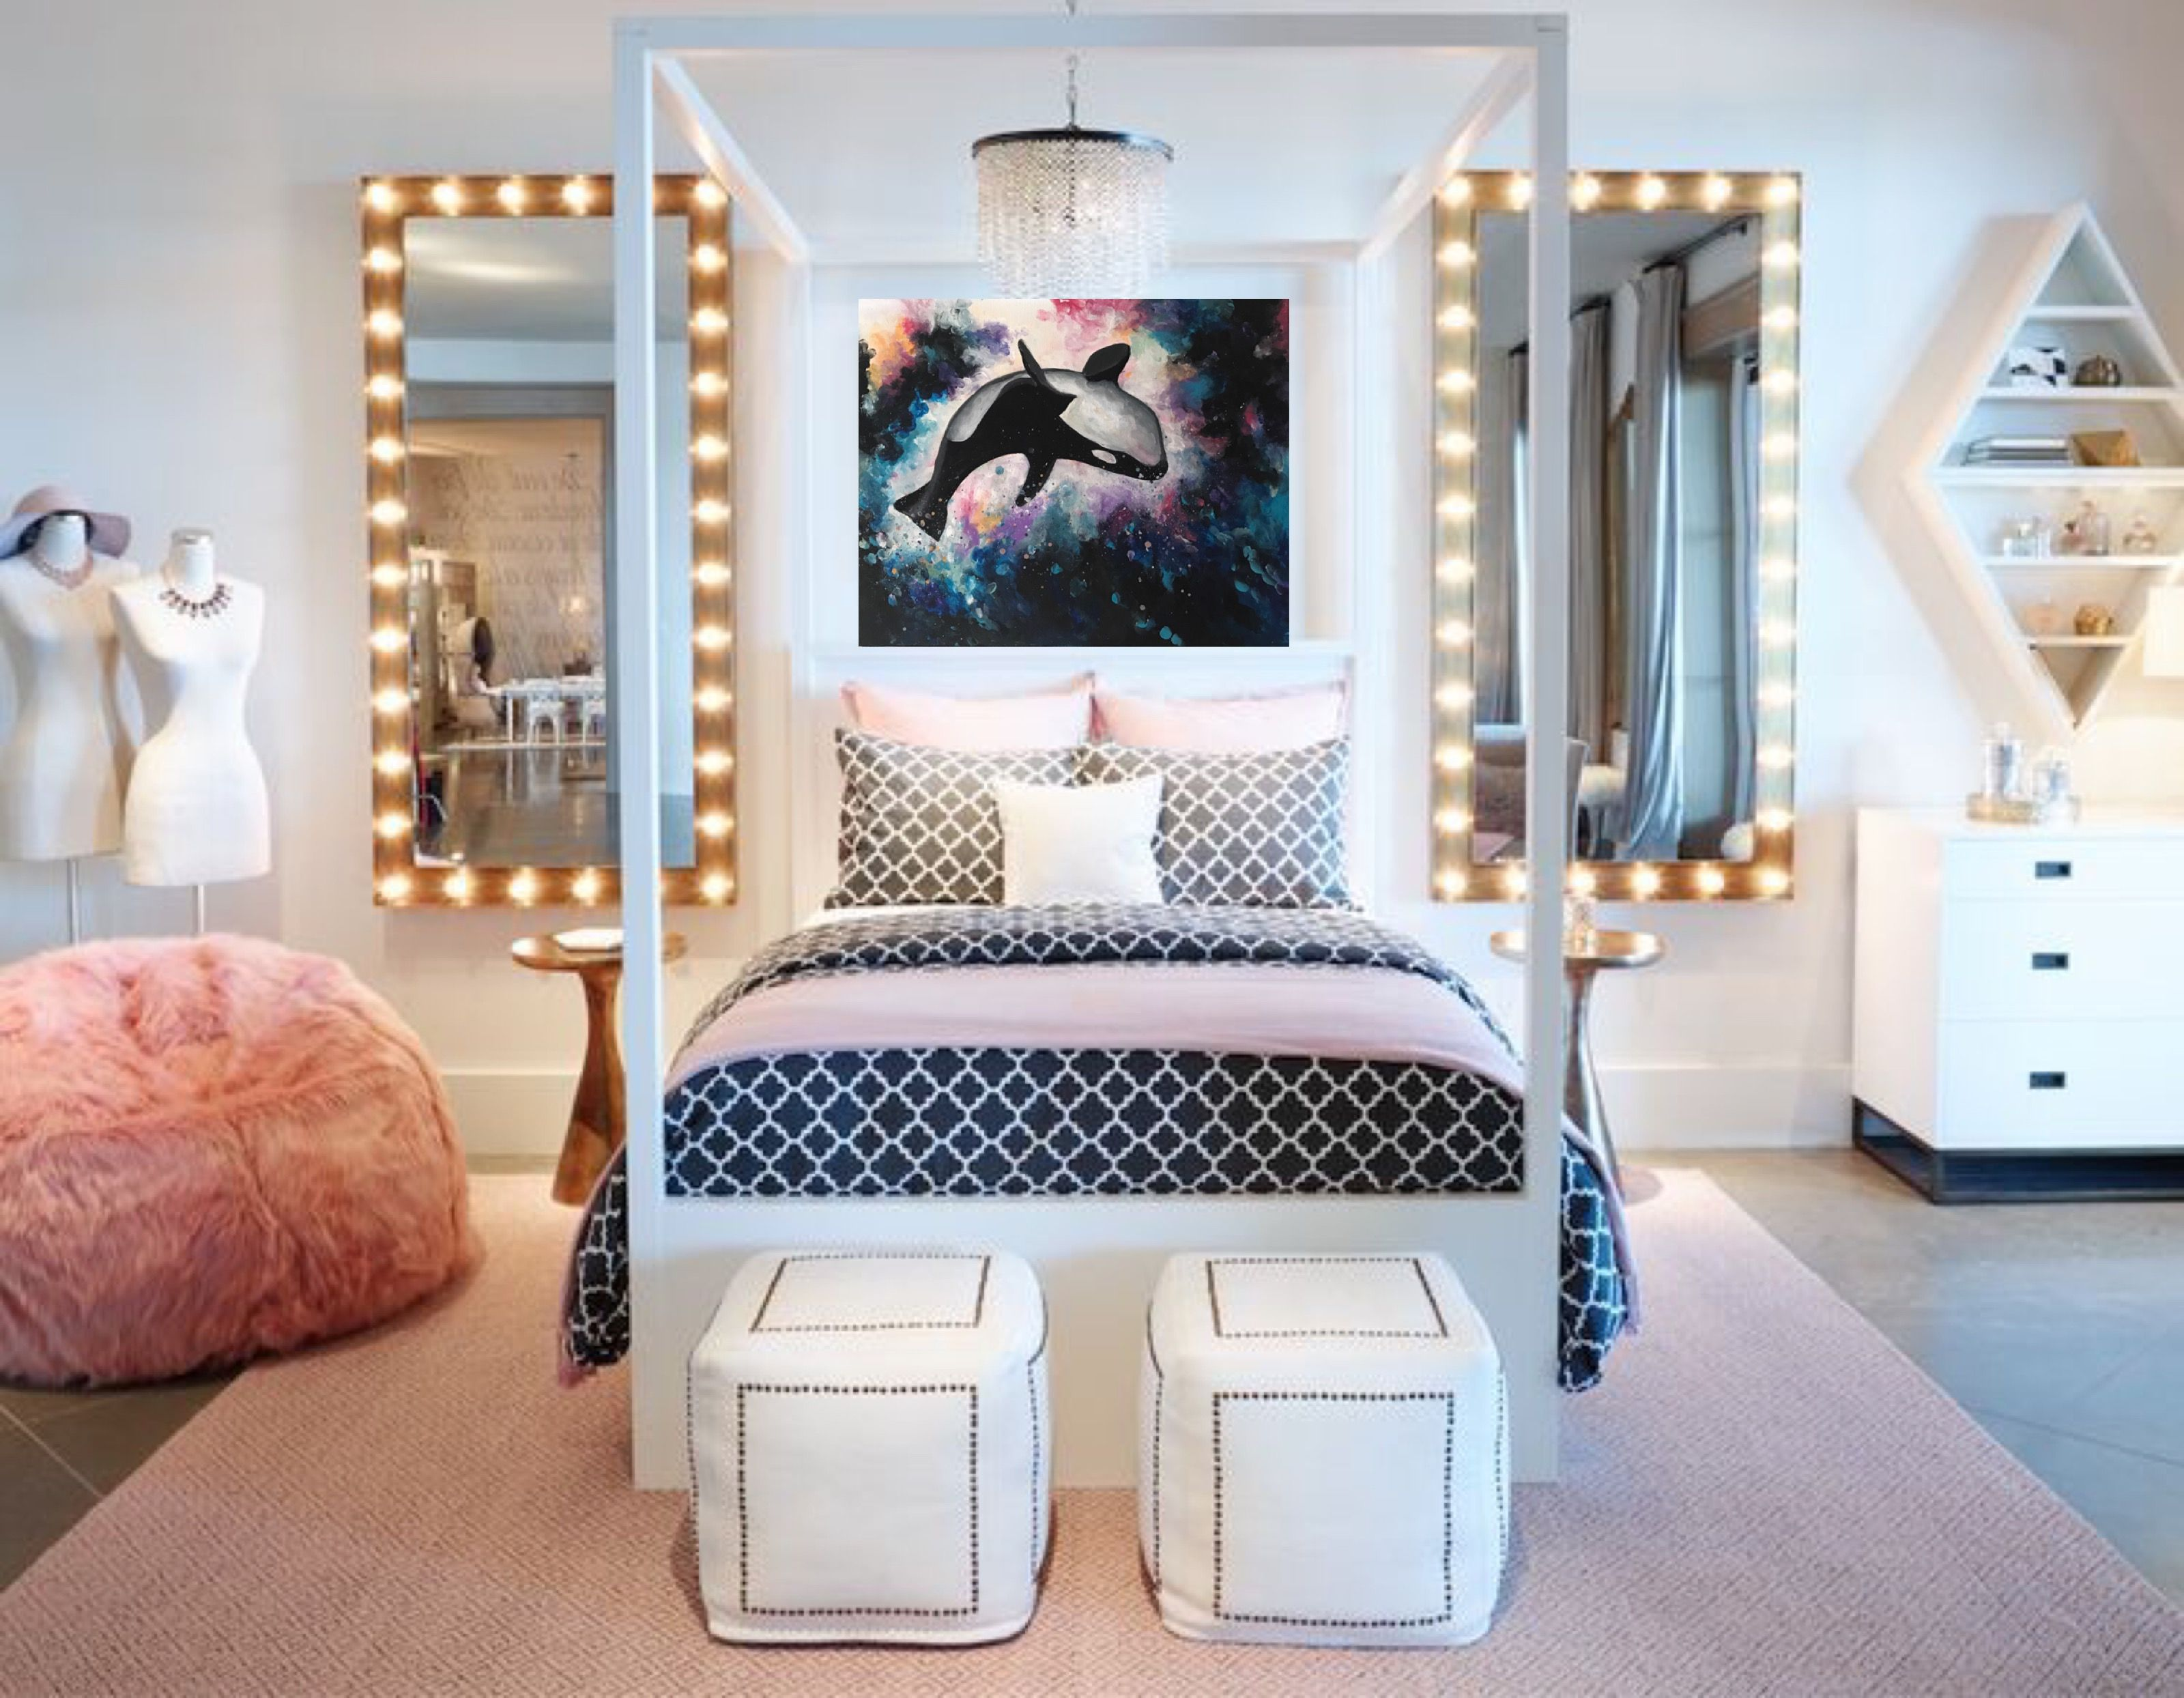 Glam bedroom glamorous bedroom glam art fashion art - Teenage girl bedroom decorations ...